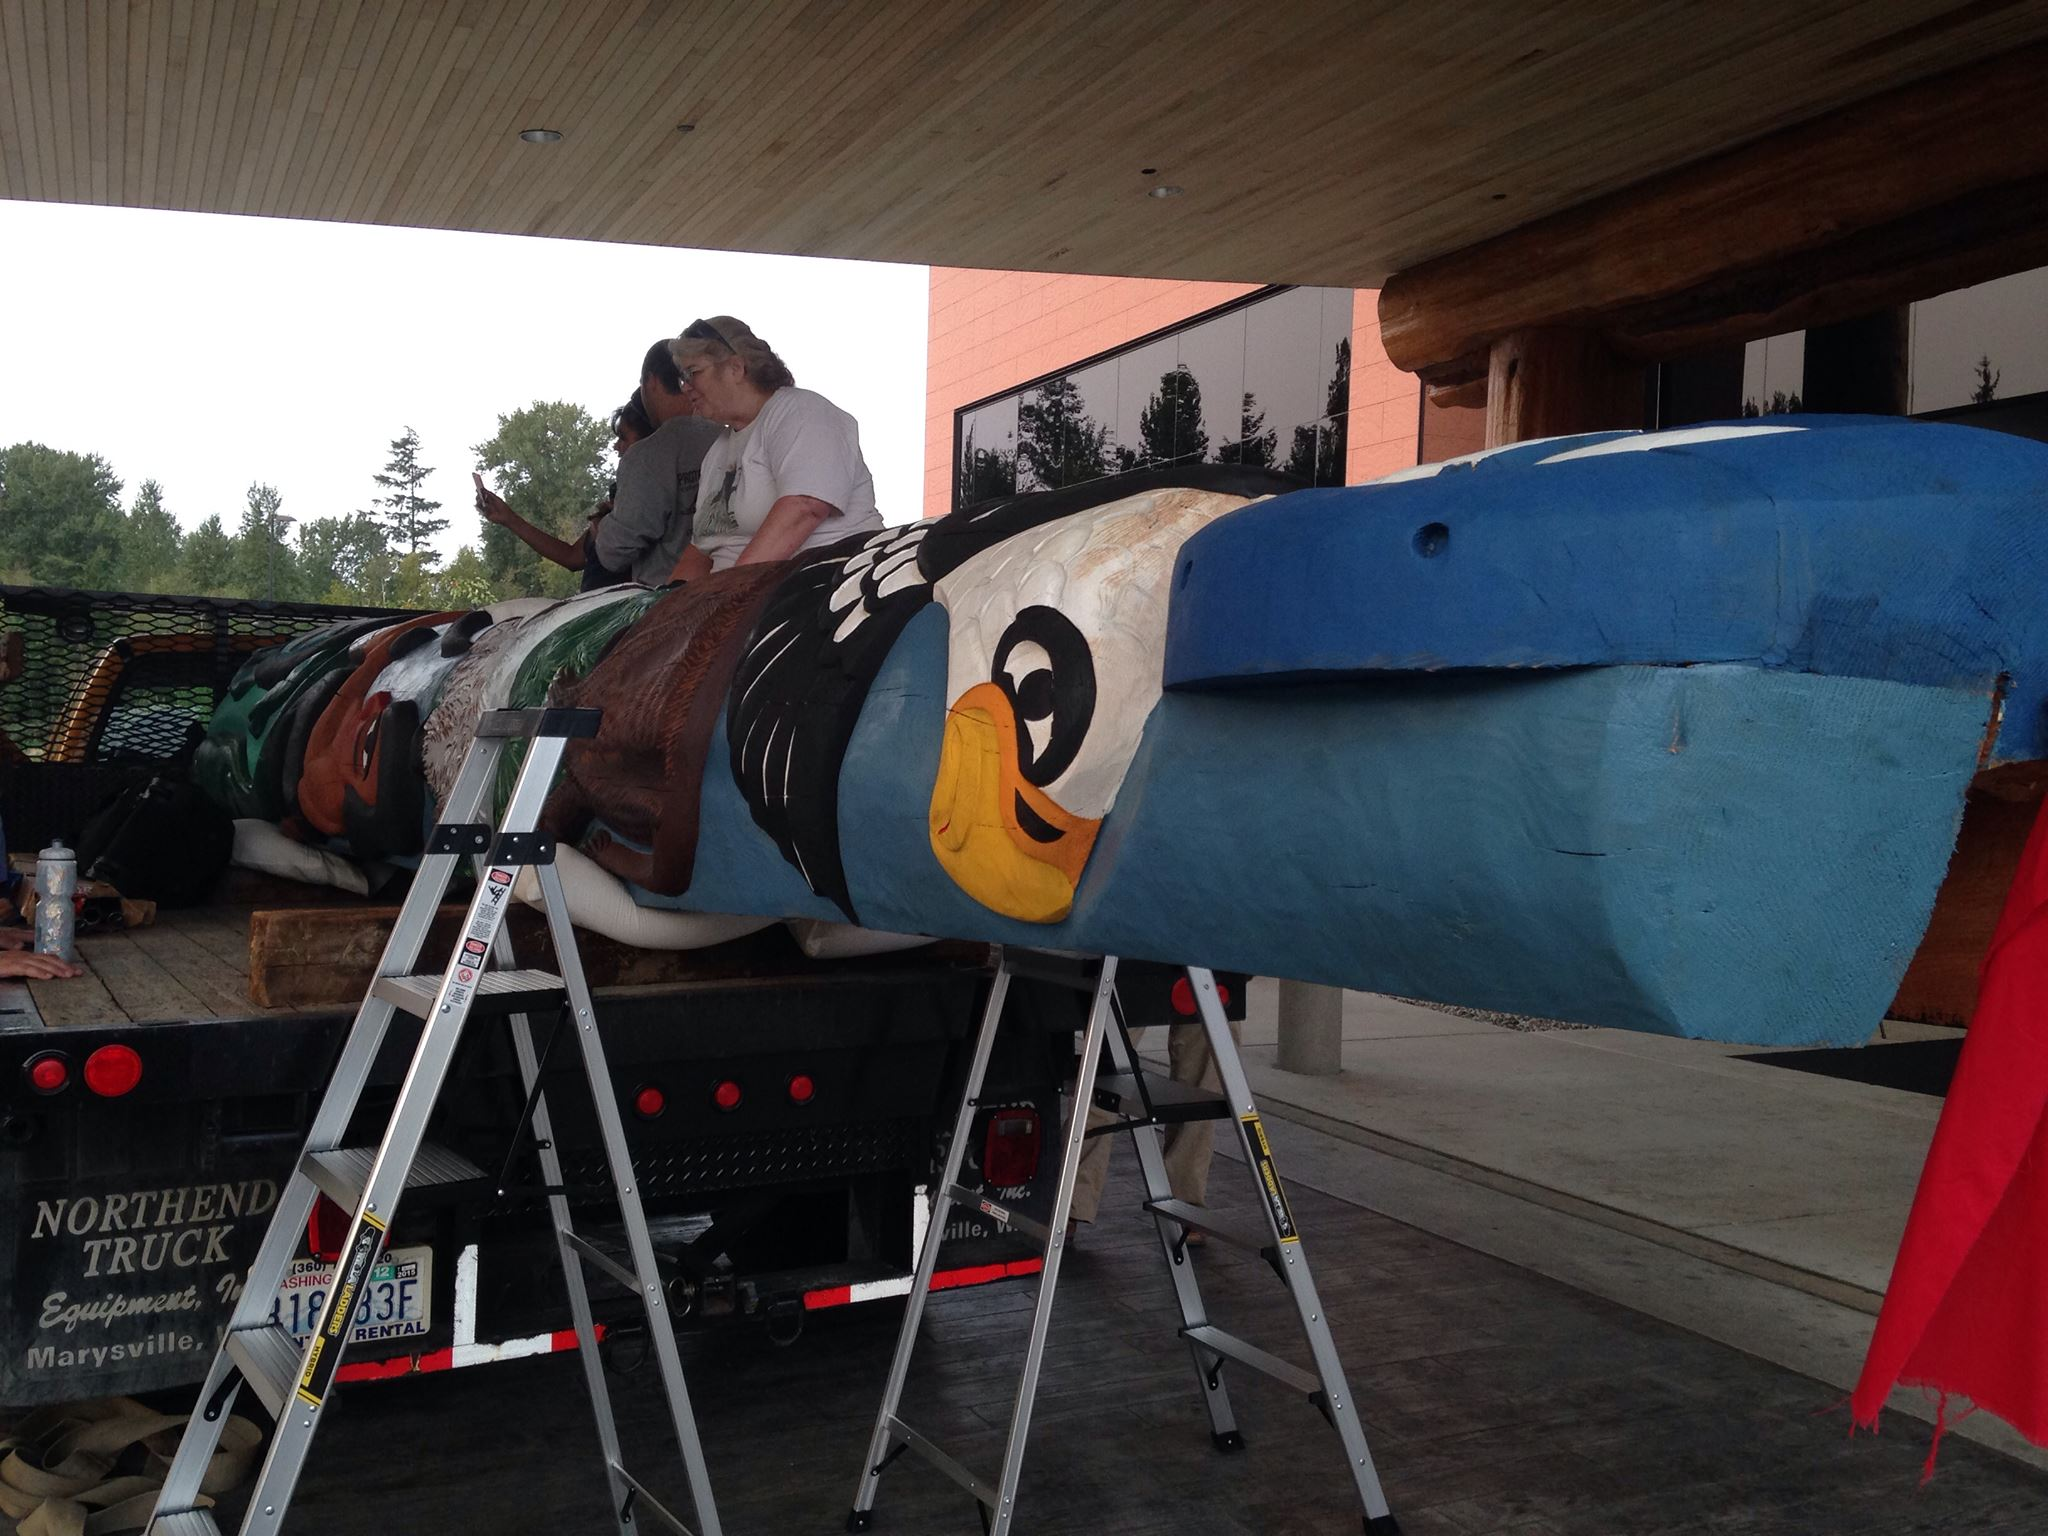 Lummi Nation sends totem pole on long trip to oppose coal project